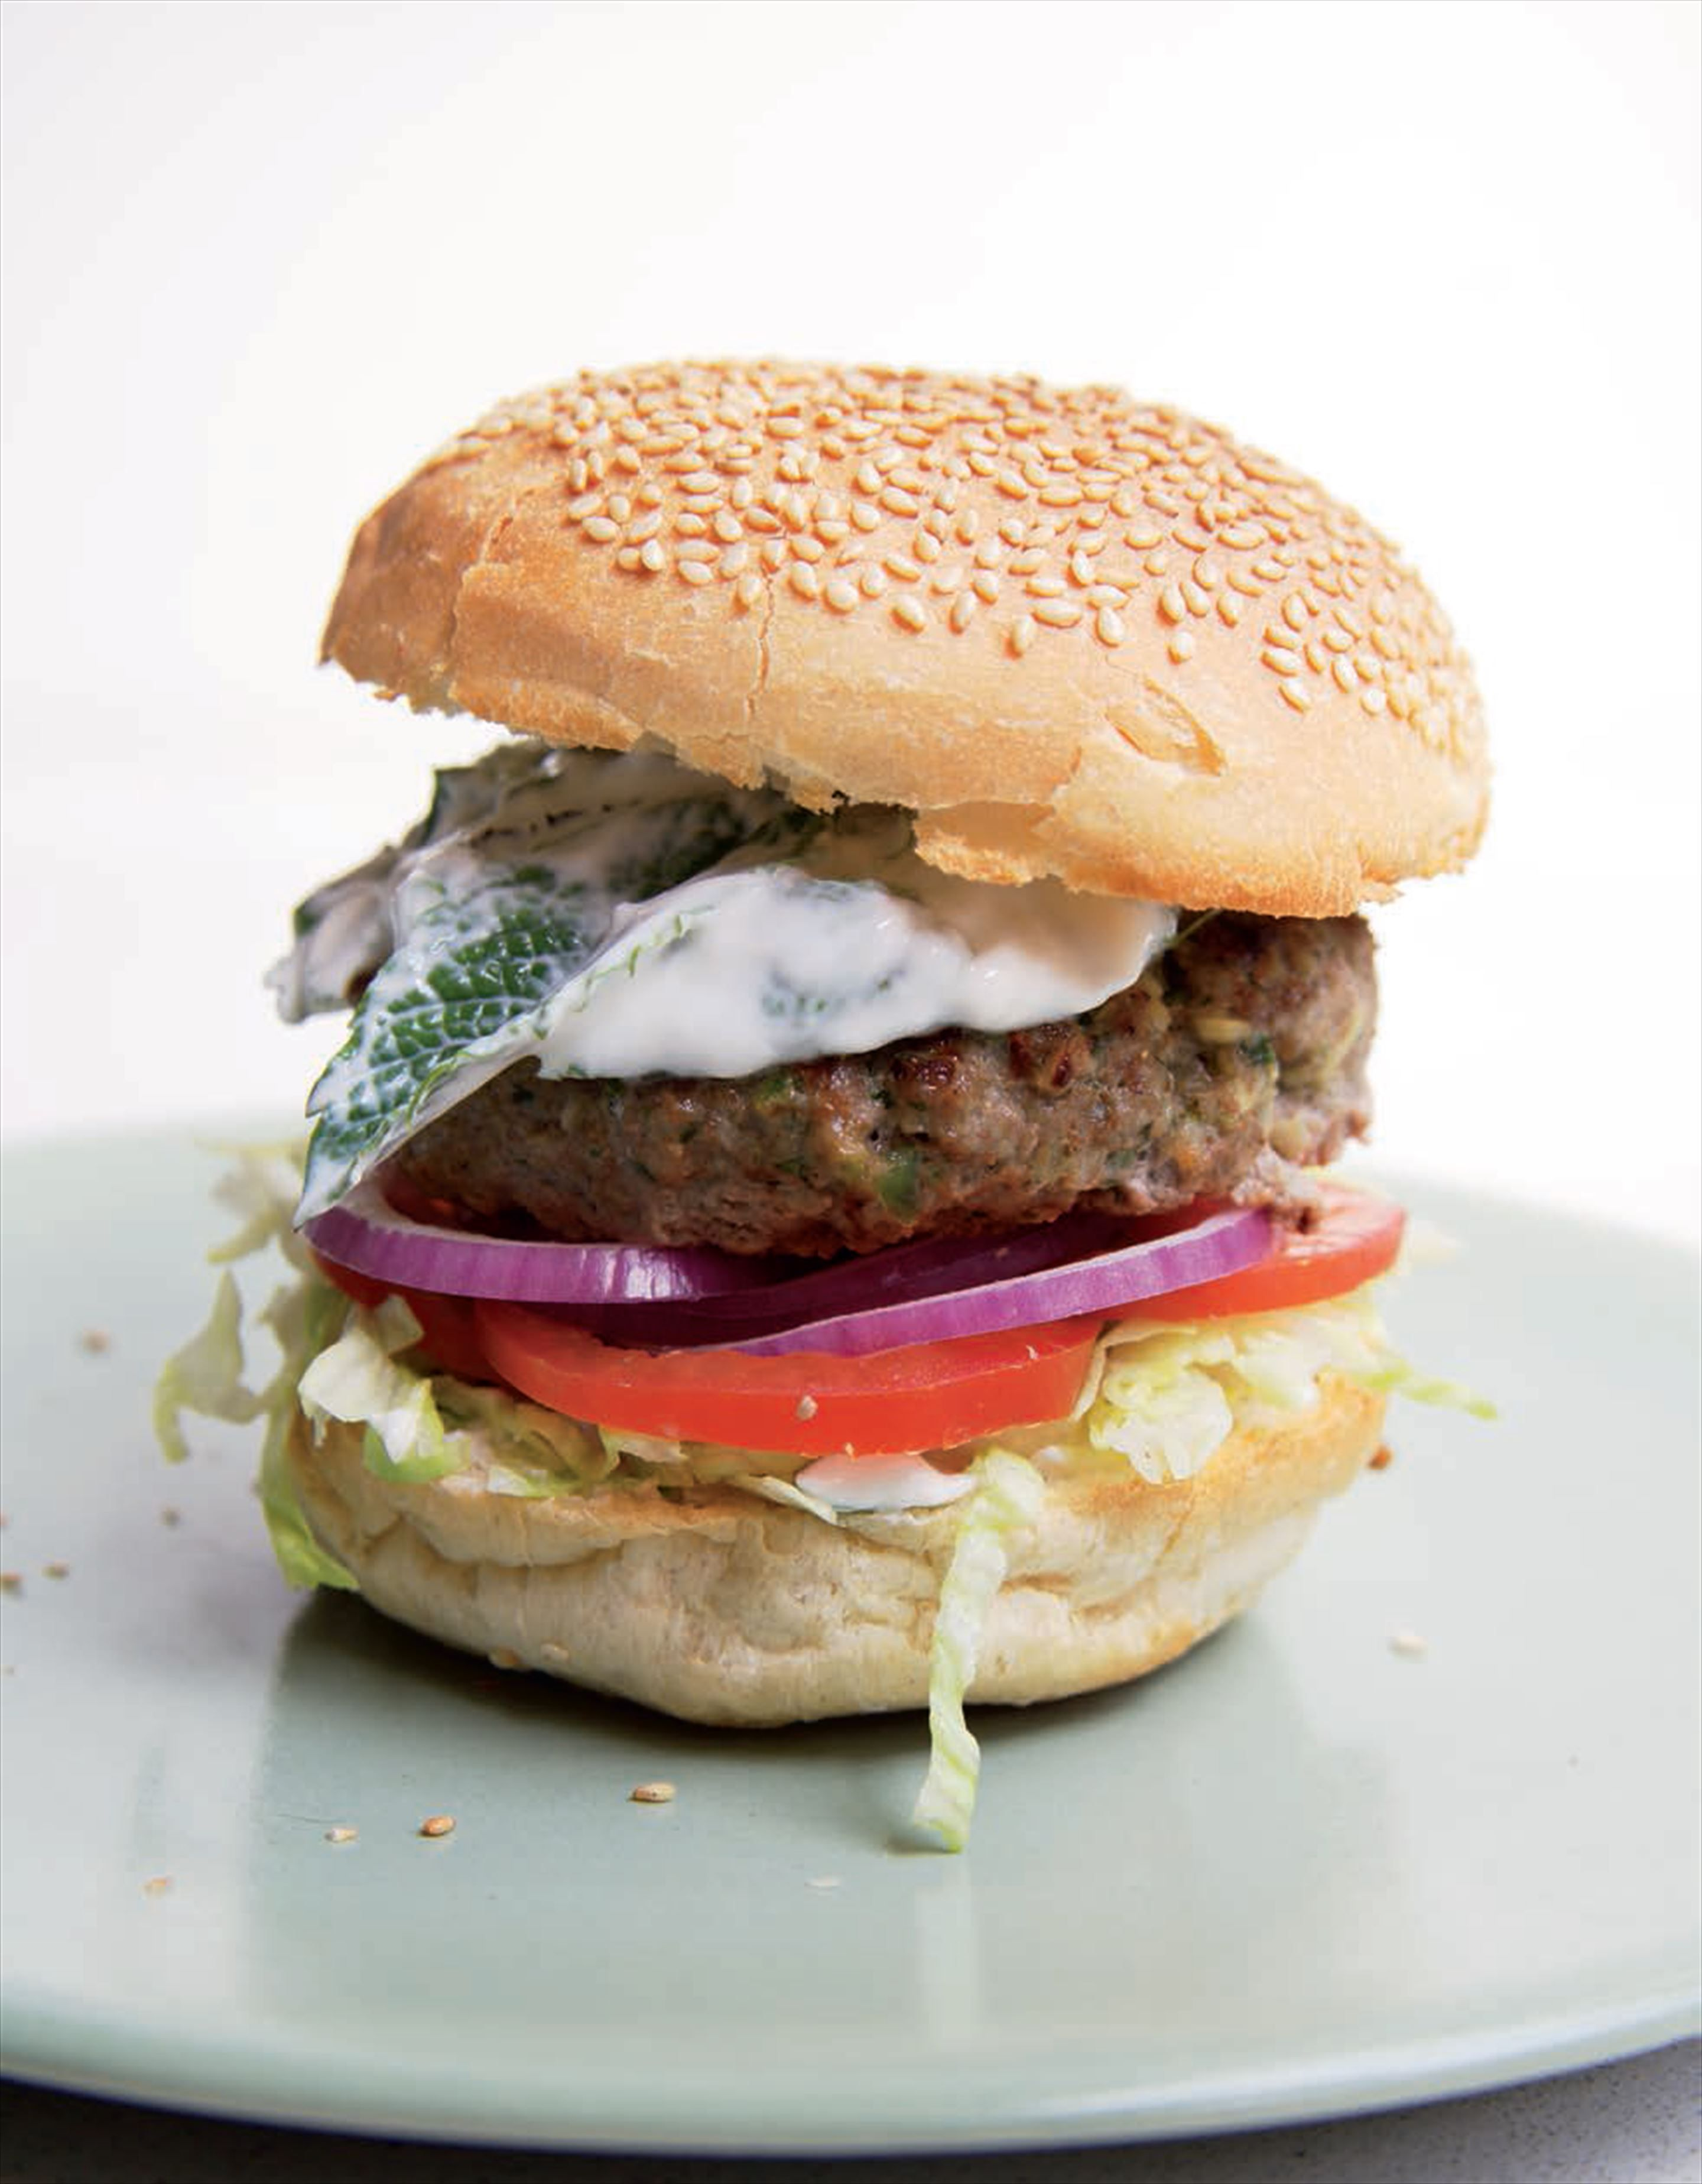 Lamb burgers with herbed yoghurt recipe from indian food made easy lamb burgers with herbed yoghurt recipe from indian food made easy by anjum anand cooked forumfinder Images